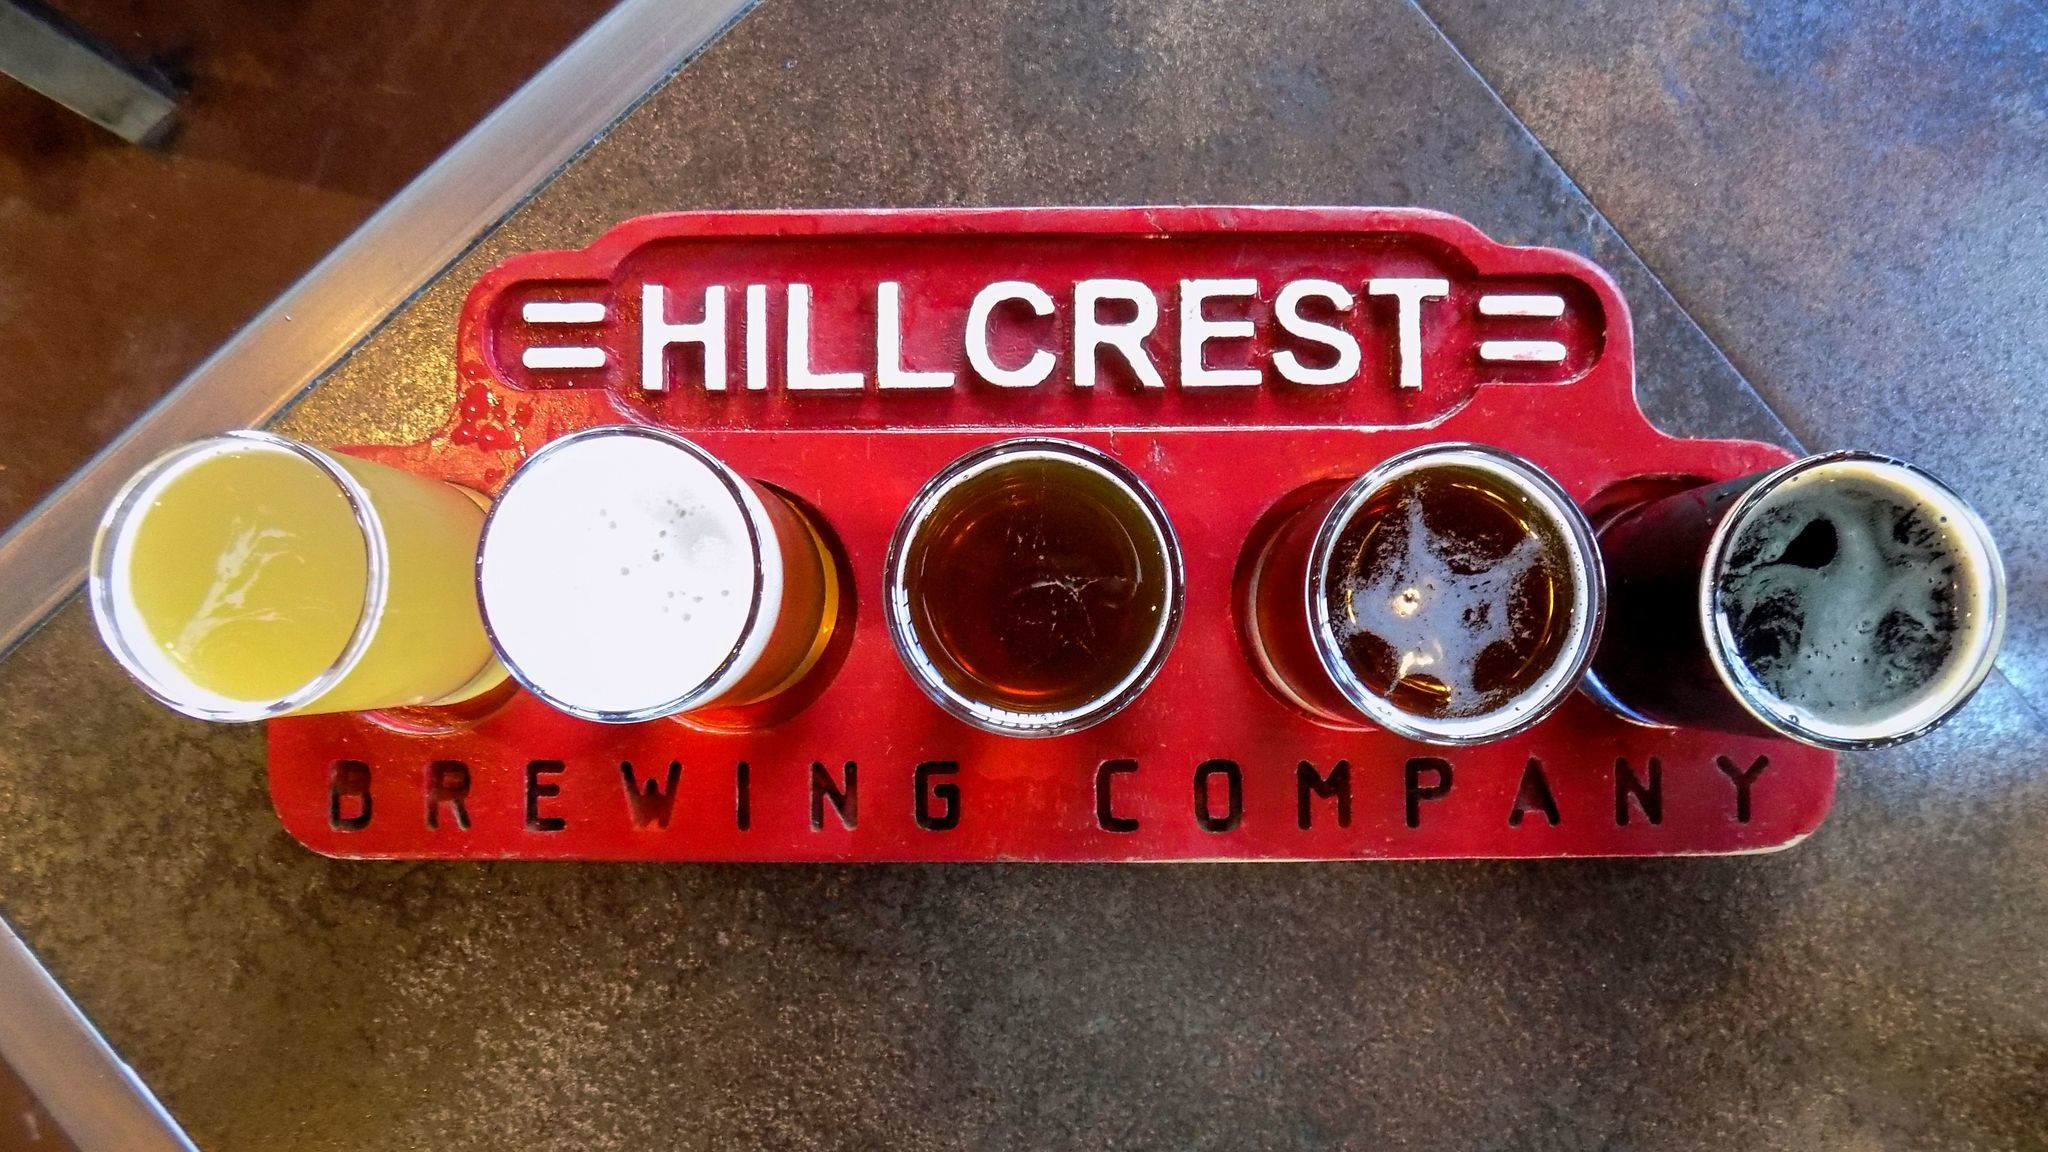 Tasters at Hillcrest Brewing Co. in the Hillcrest neighborhood.